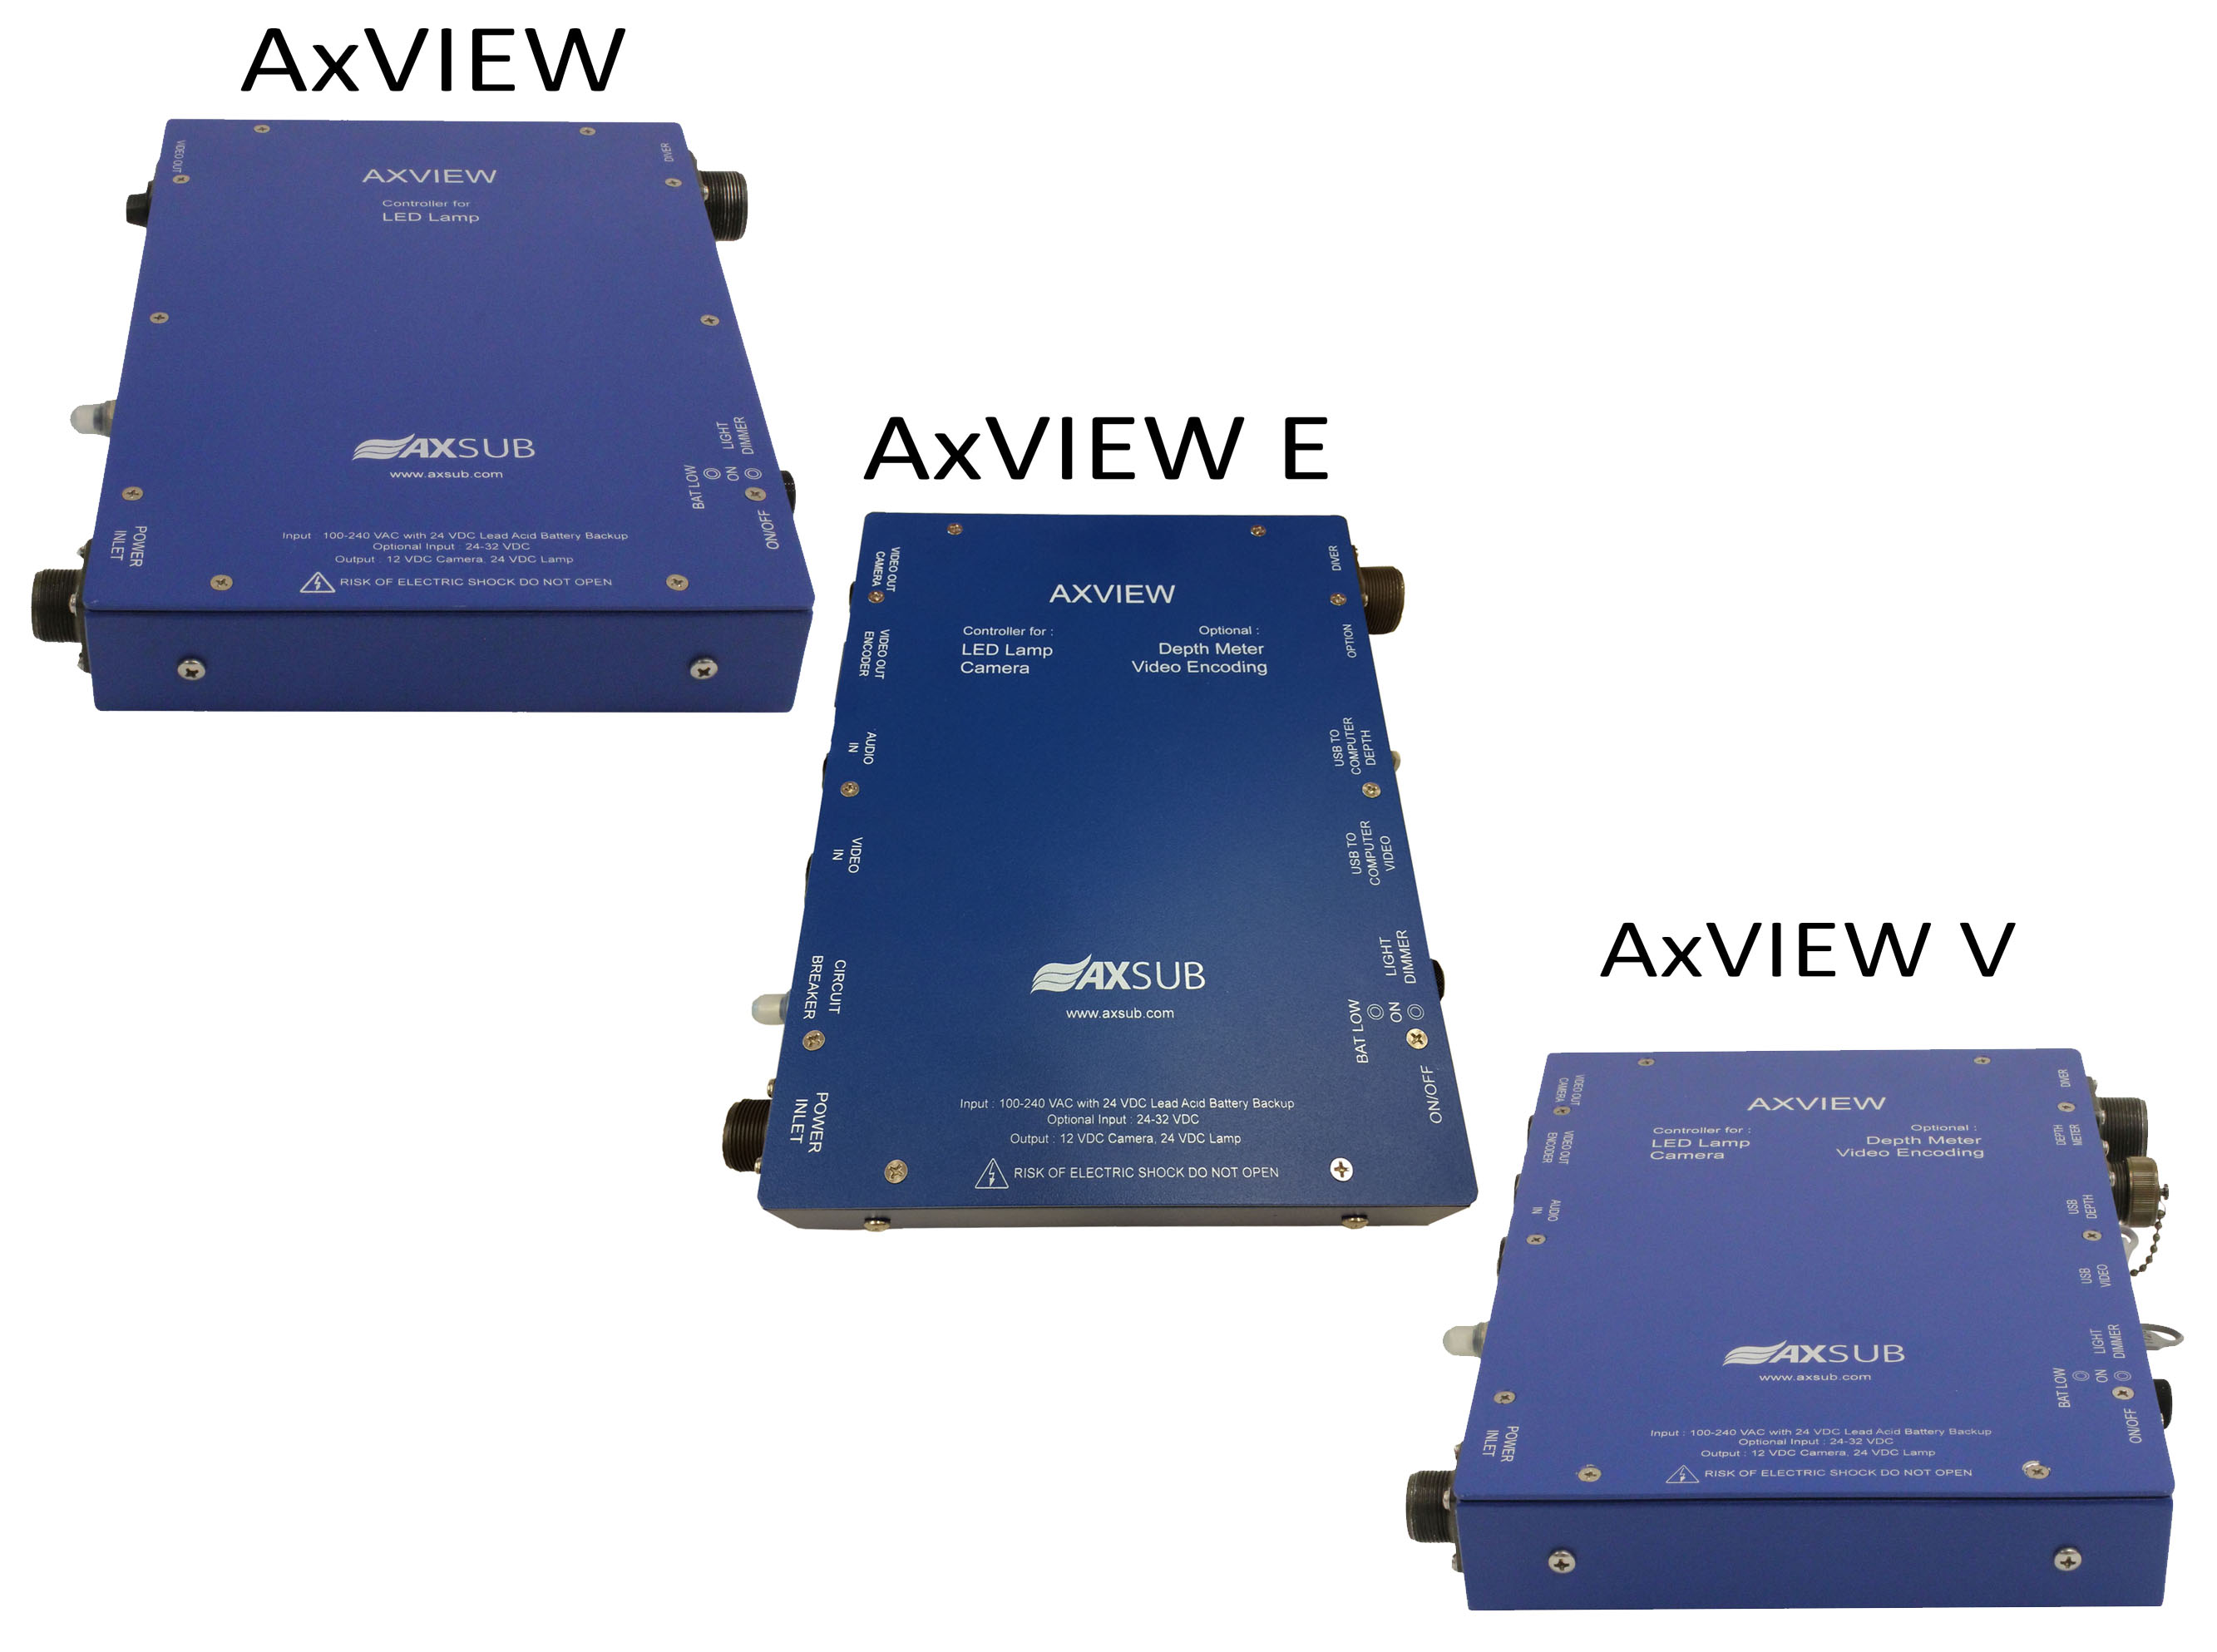 AxVIEW